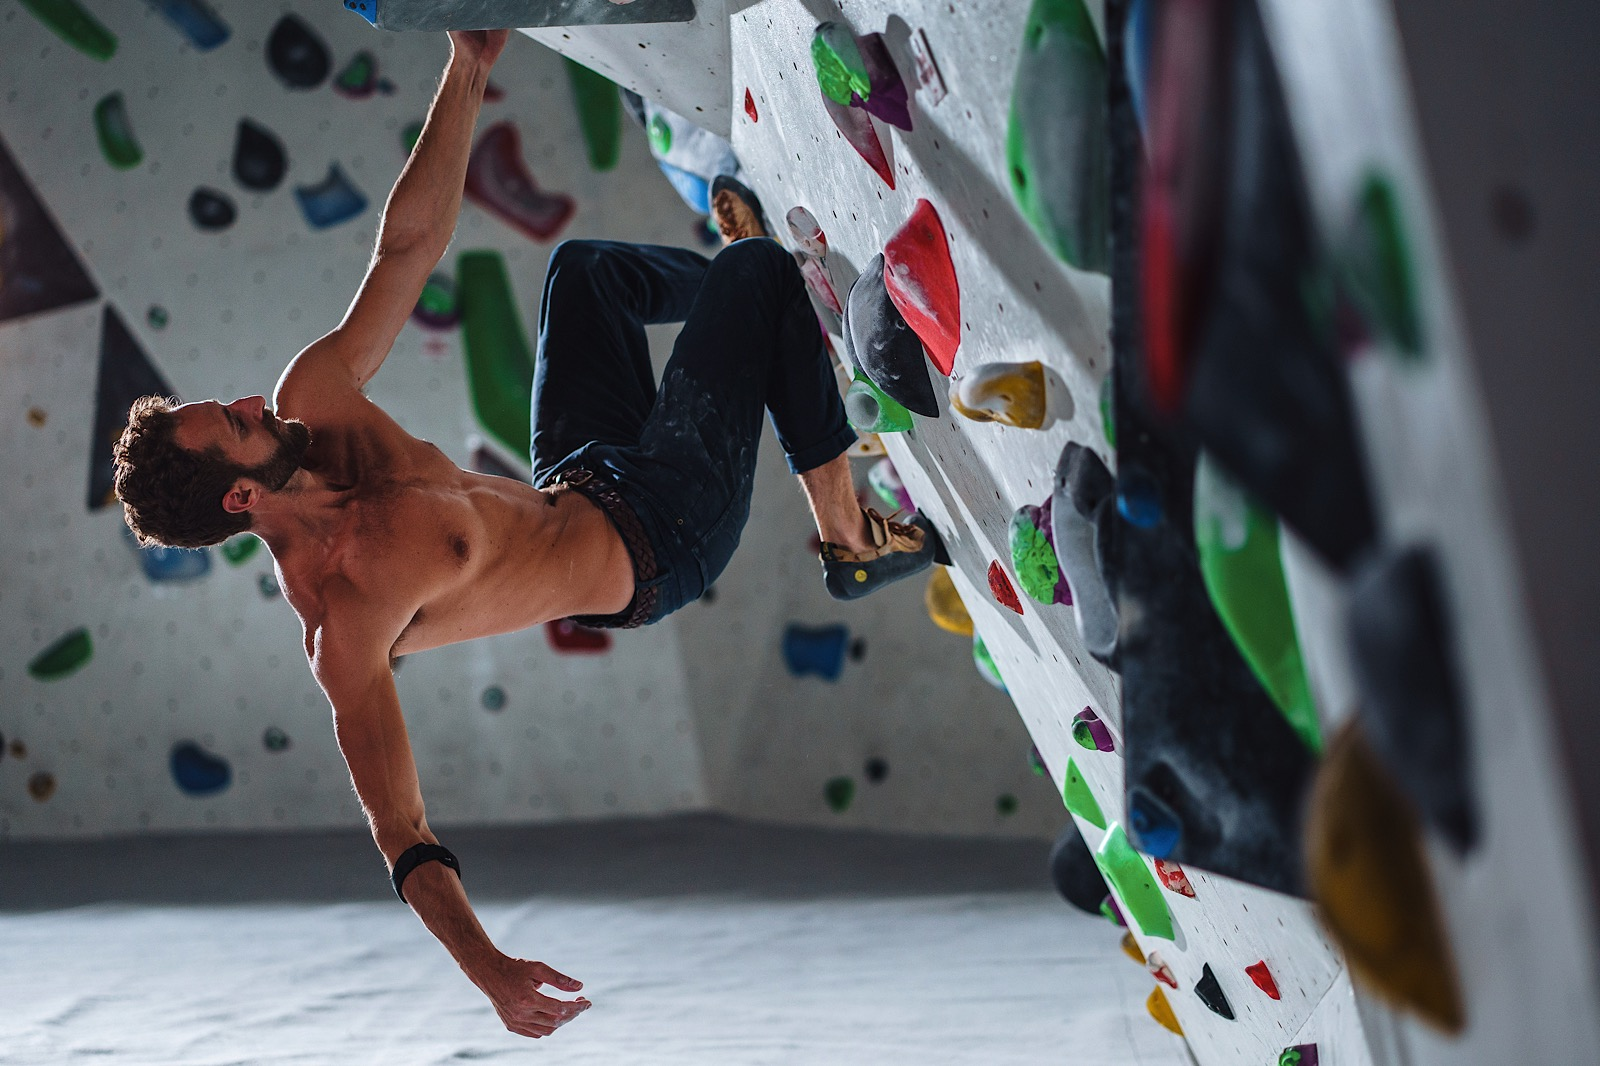 Bare chested rockclimber on wall holding on with one arm on overhang